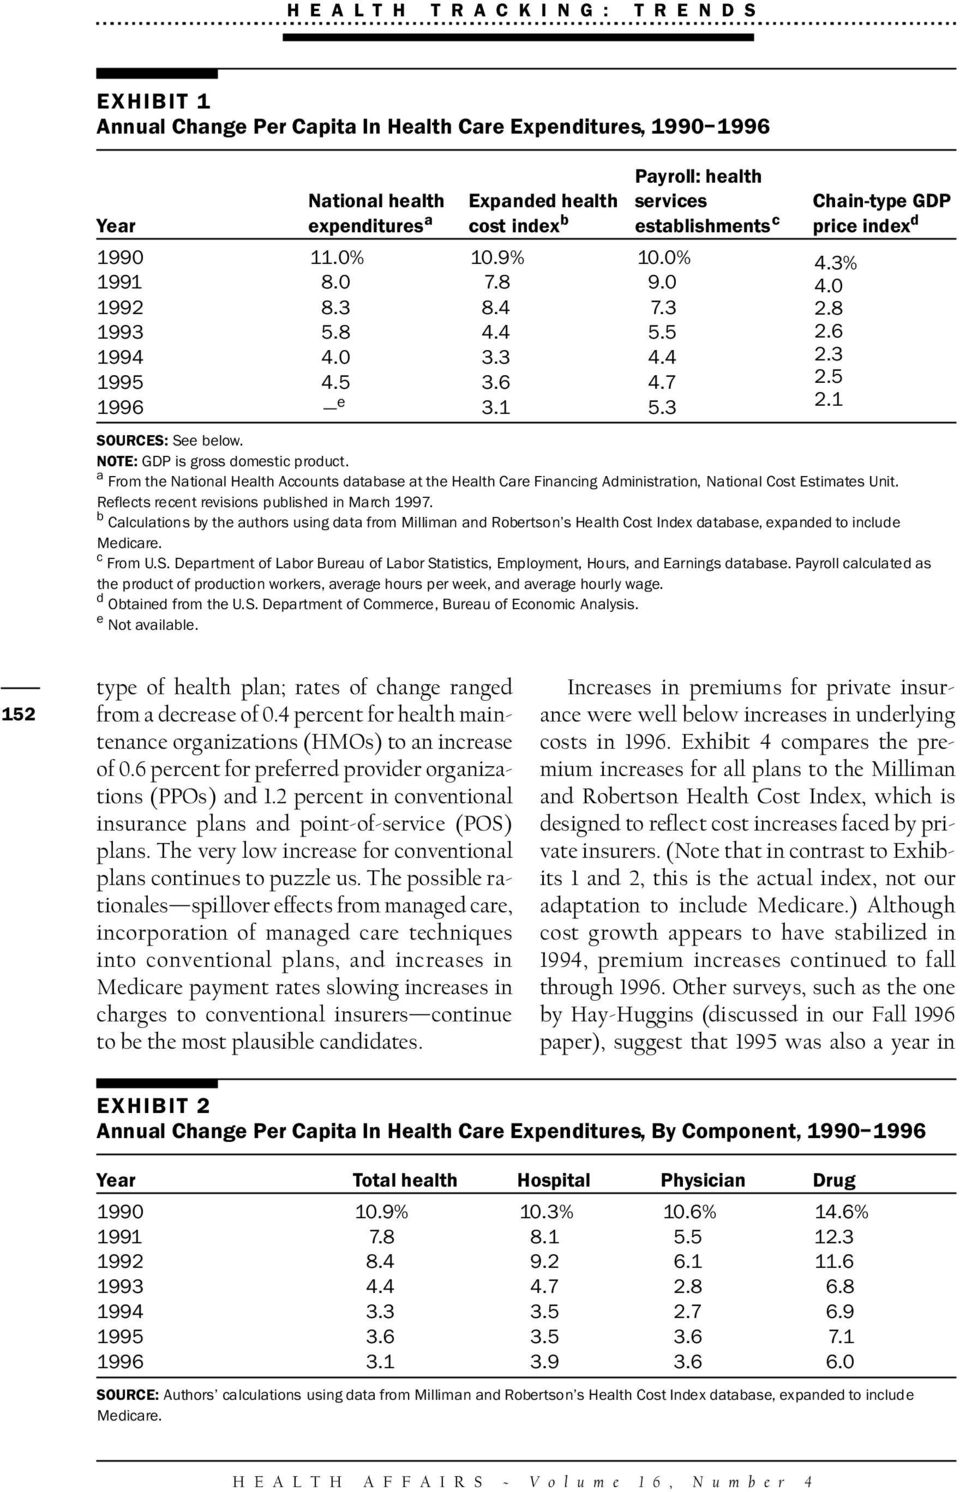 a From the National Health Accounts database at the Health Care Financing Administration, National Cost Estimates Unit. Reflects recent revisions published in March 1997.